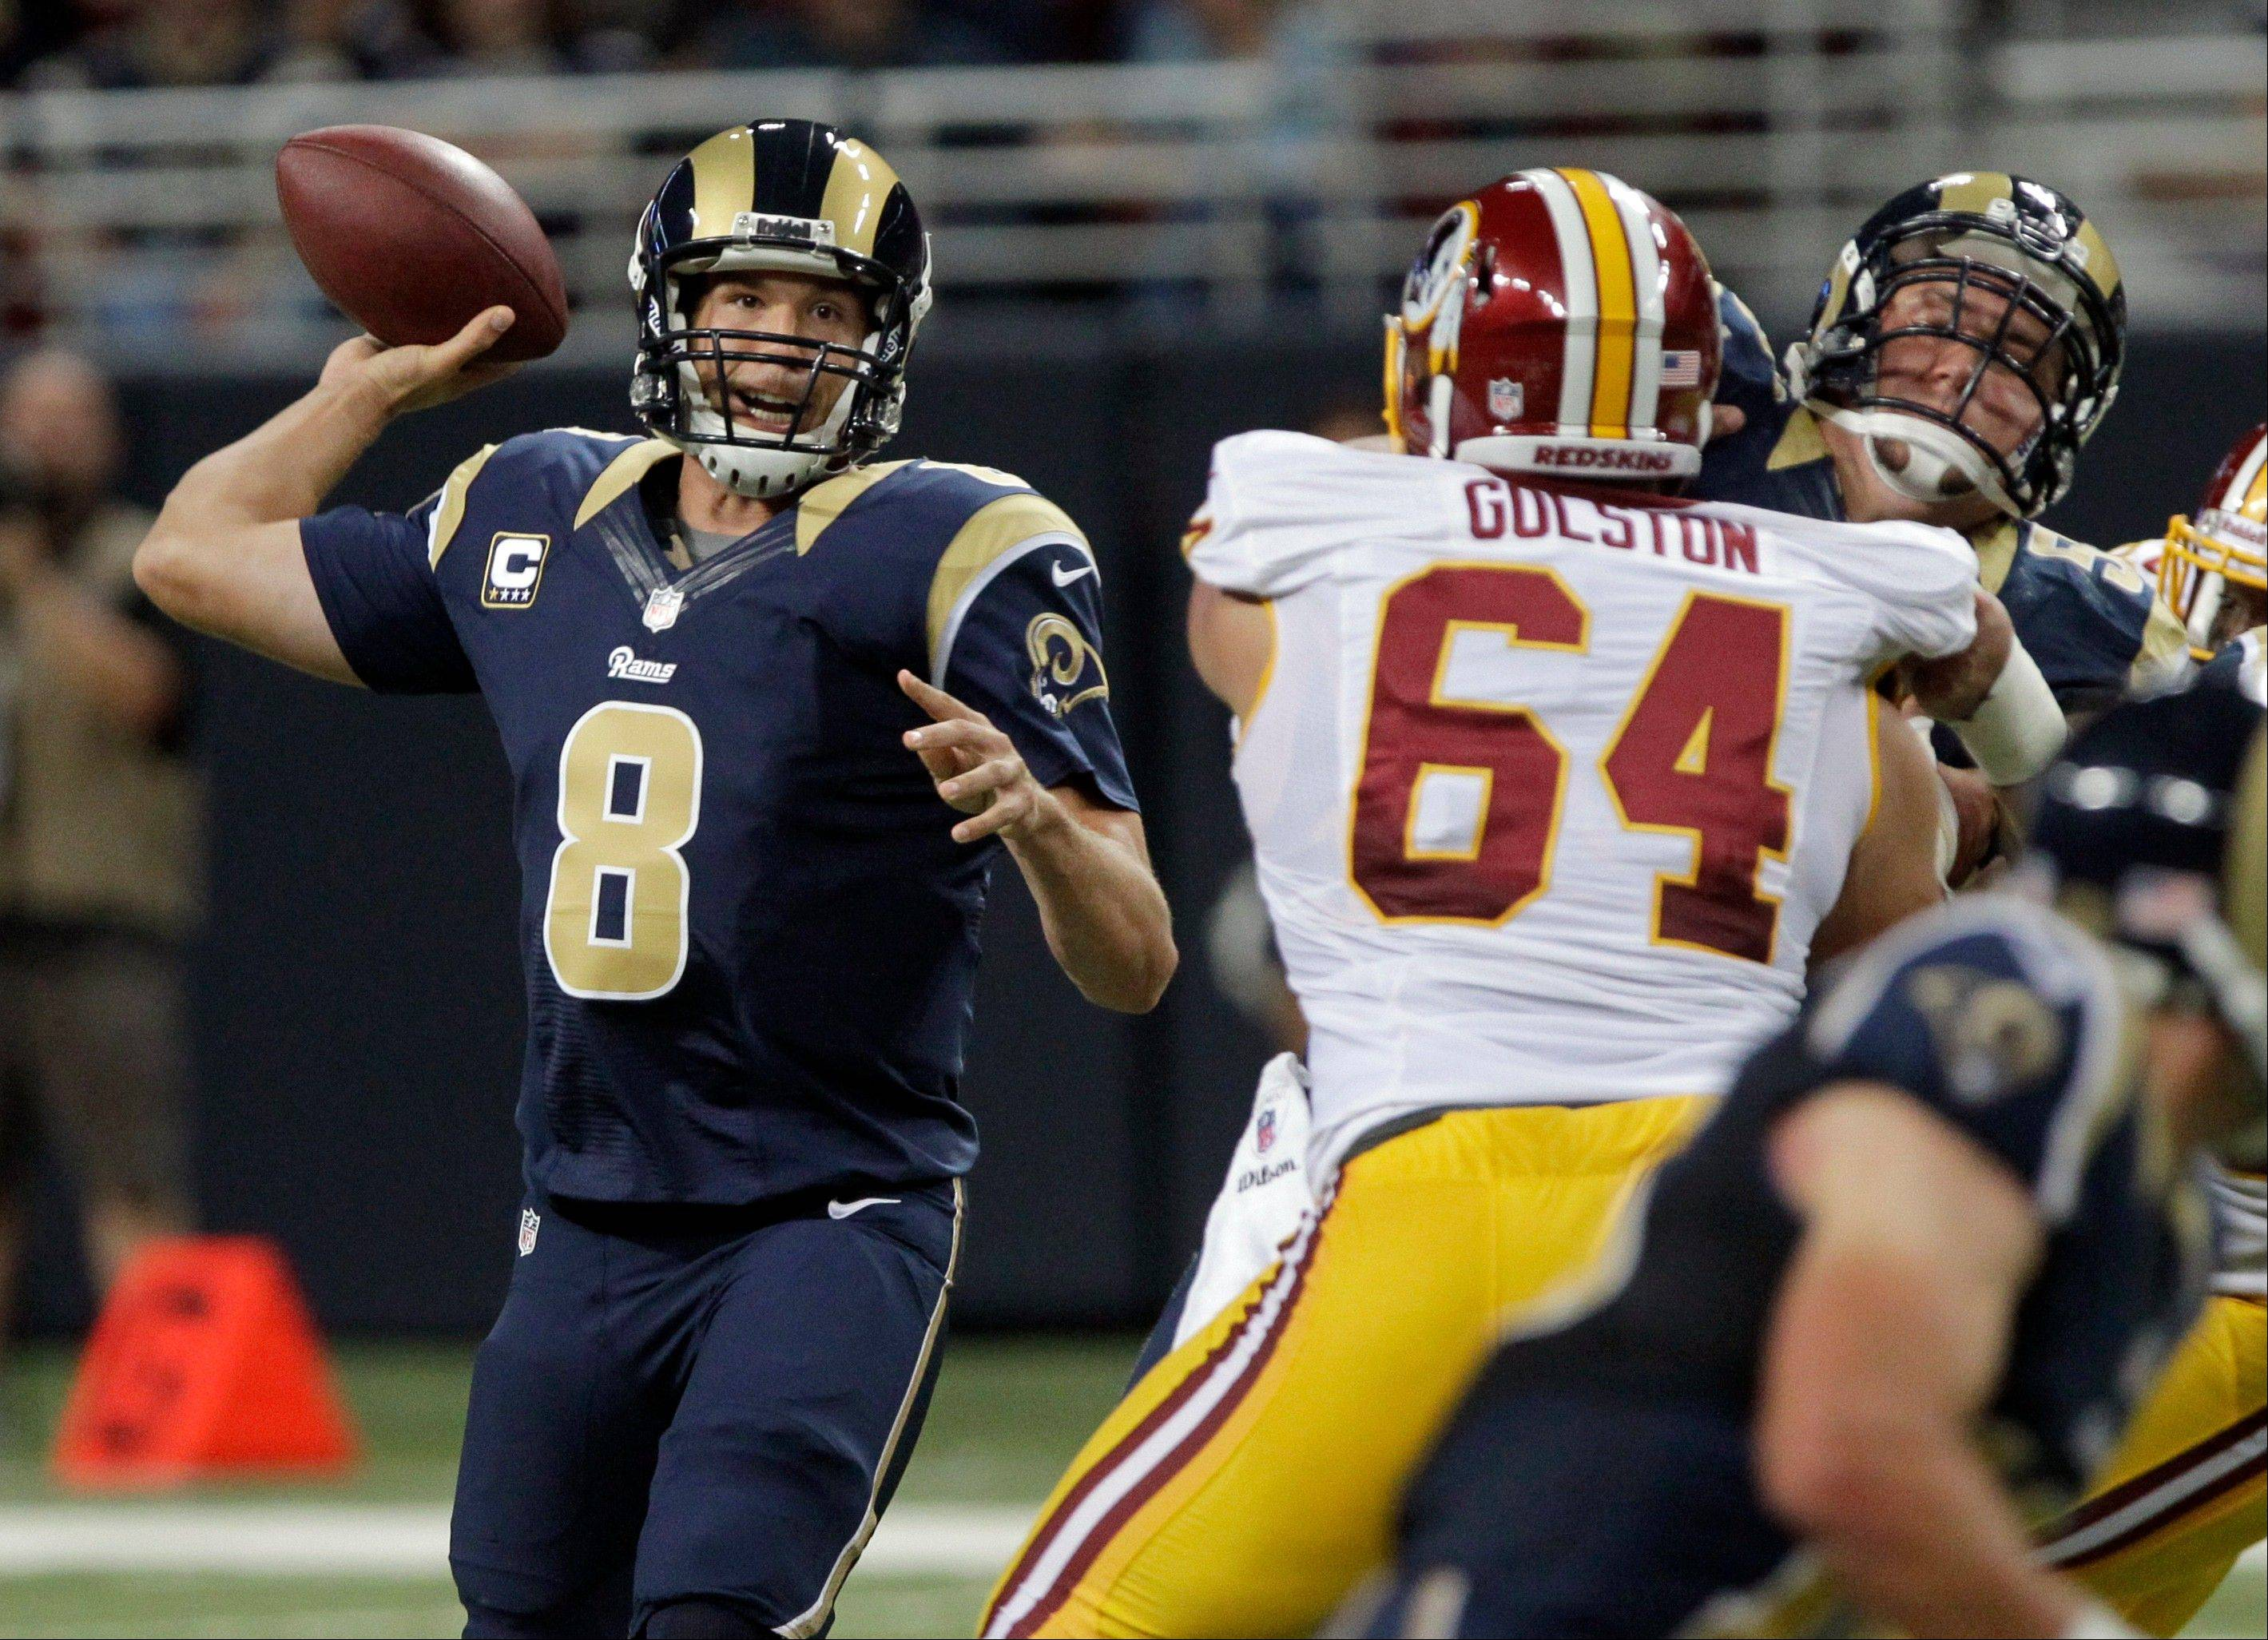 St. Louis Rams quarterback Sam Bradford, left, throws during the first quarter of an NFL football game against the Washington Redskins, Sunday, Sept. 16, 2012, in St. Louis.